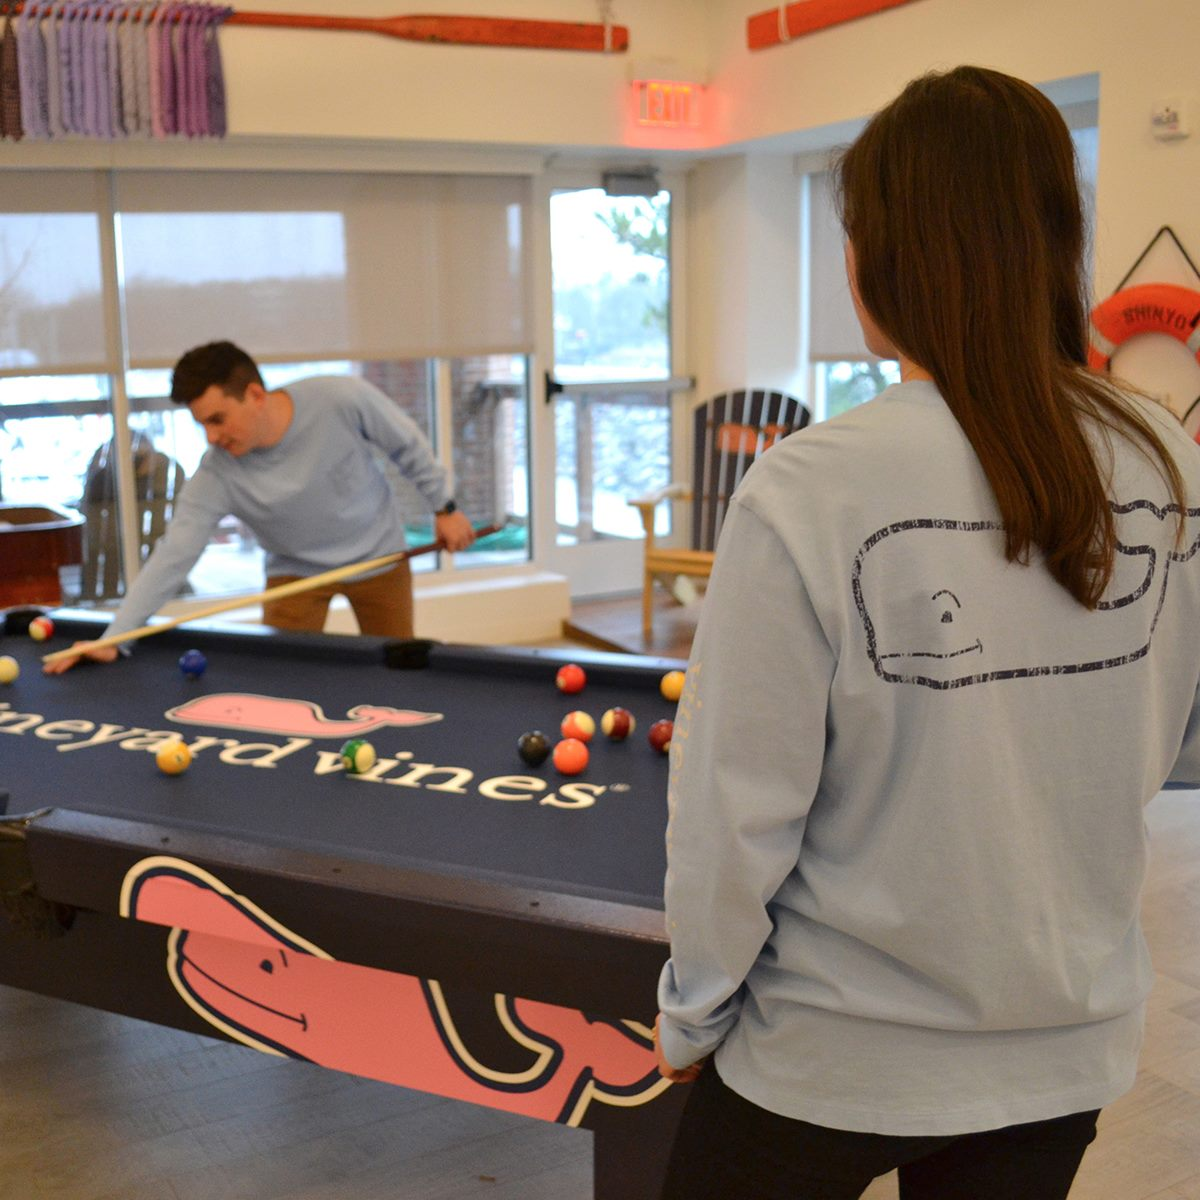 Two Vineyard Vines employees playing pool on a custom outdoor pool table by R&R Outdoors All Weather Billiards